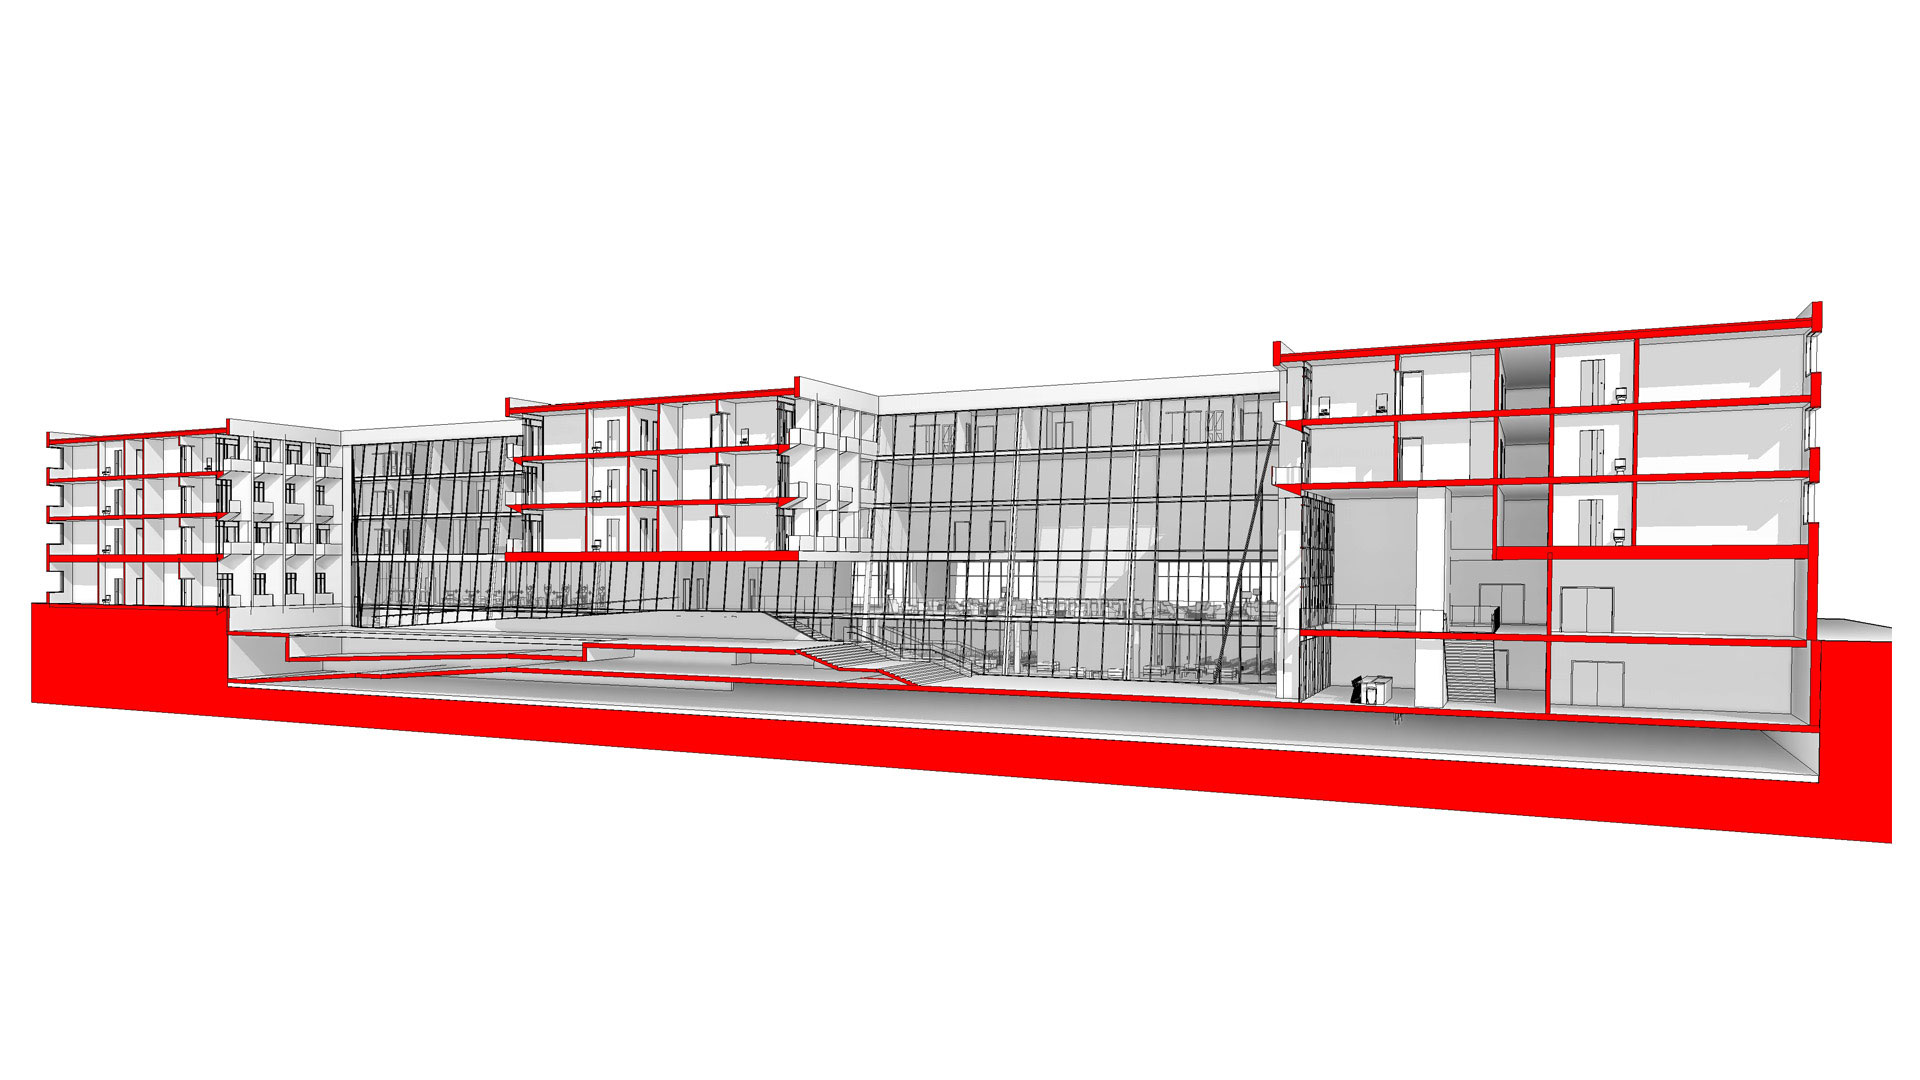 Section drawing of the Jericho Plaza Hotel project in Jericho, New York designed by the architecture studio Danny Forster & Architecture